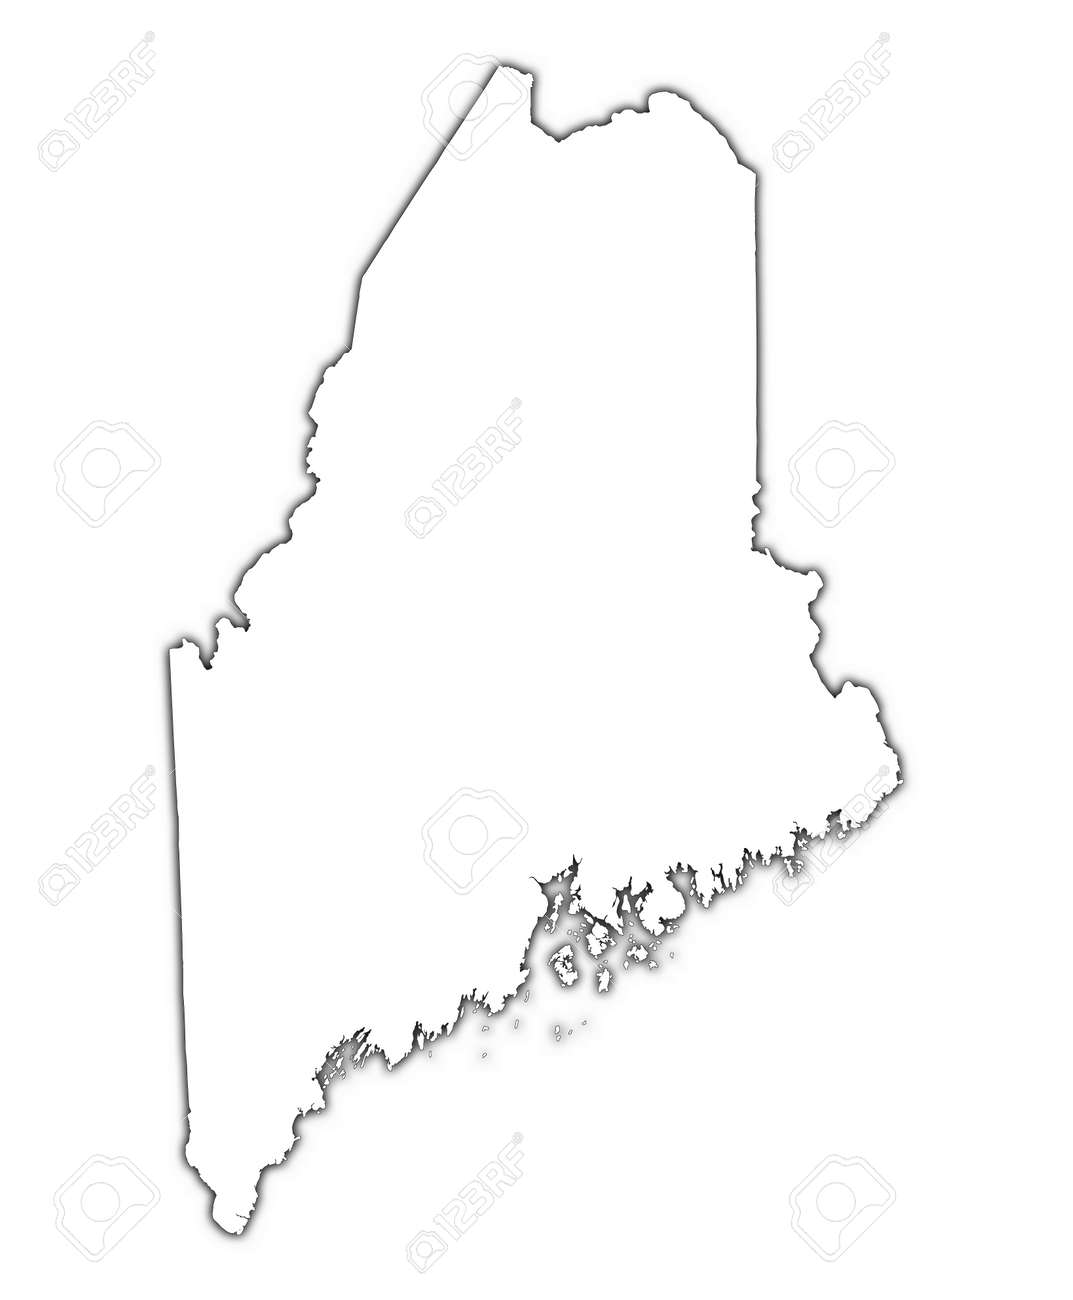 Maine USA Outline Map With Shadow Detailed Mercator Projection - Maine state usa map